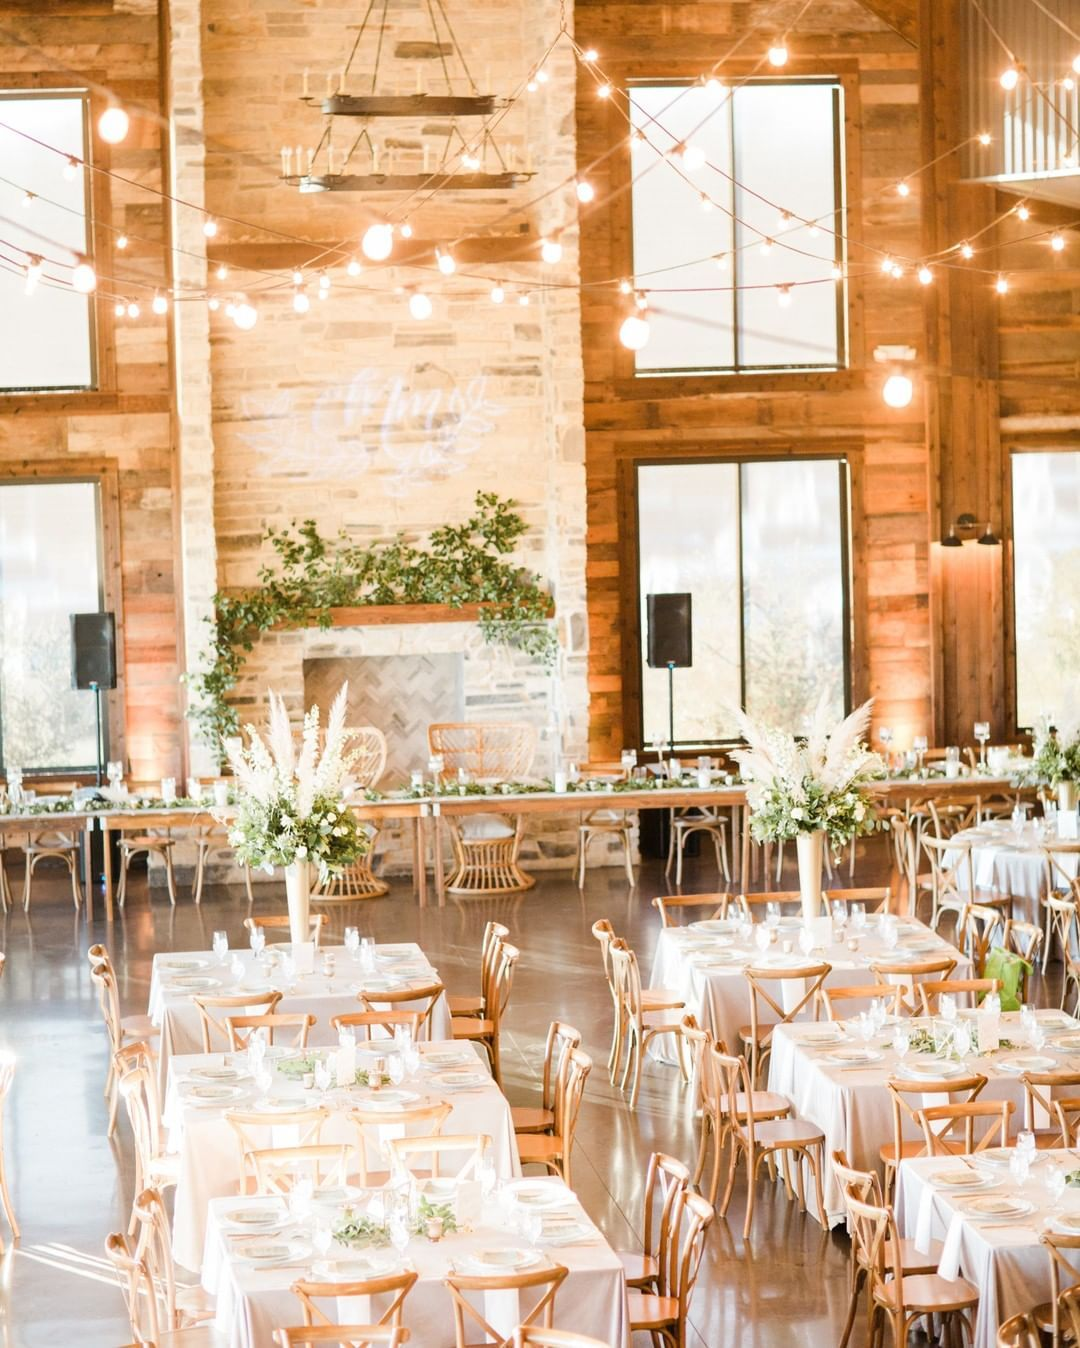 Farmhouse Dining Table Rentals for Your Dallas Wedding